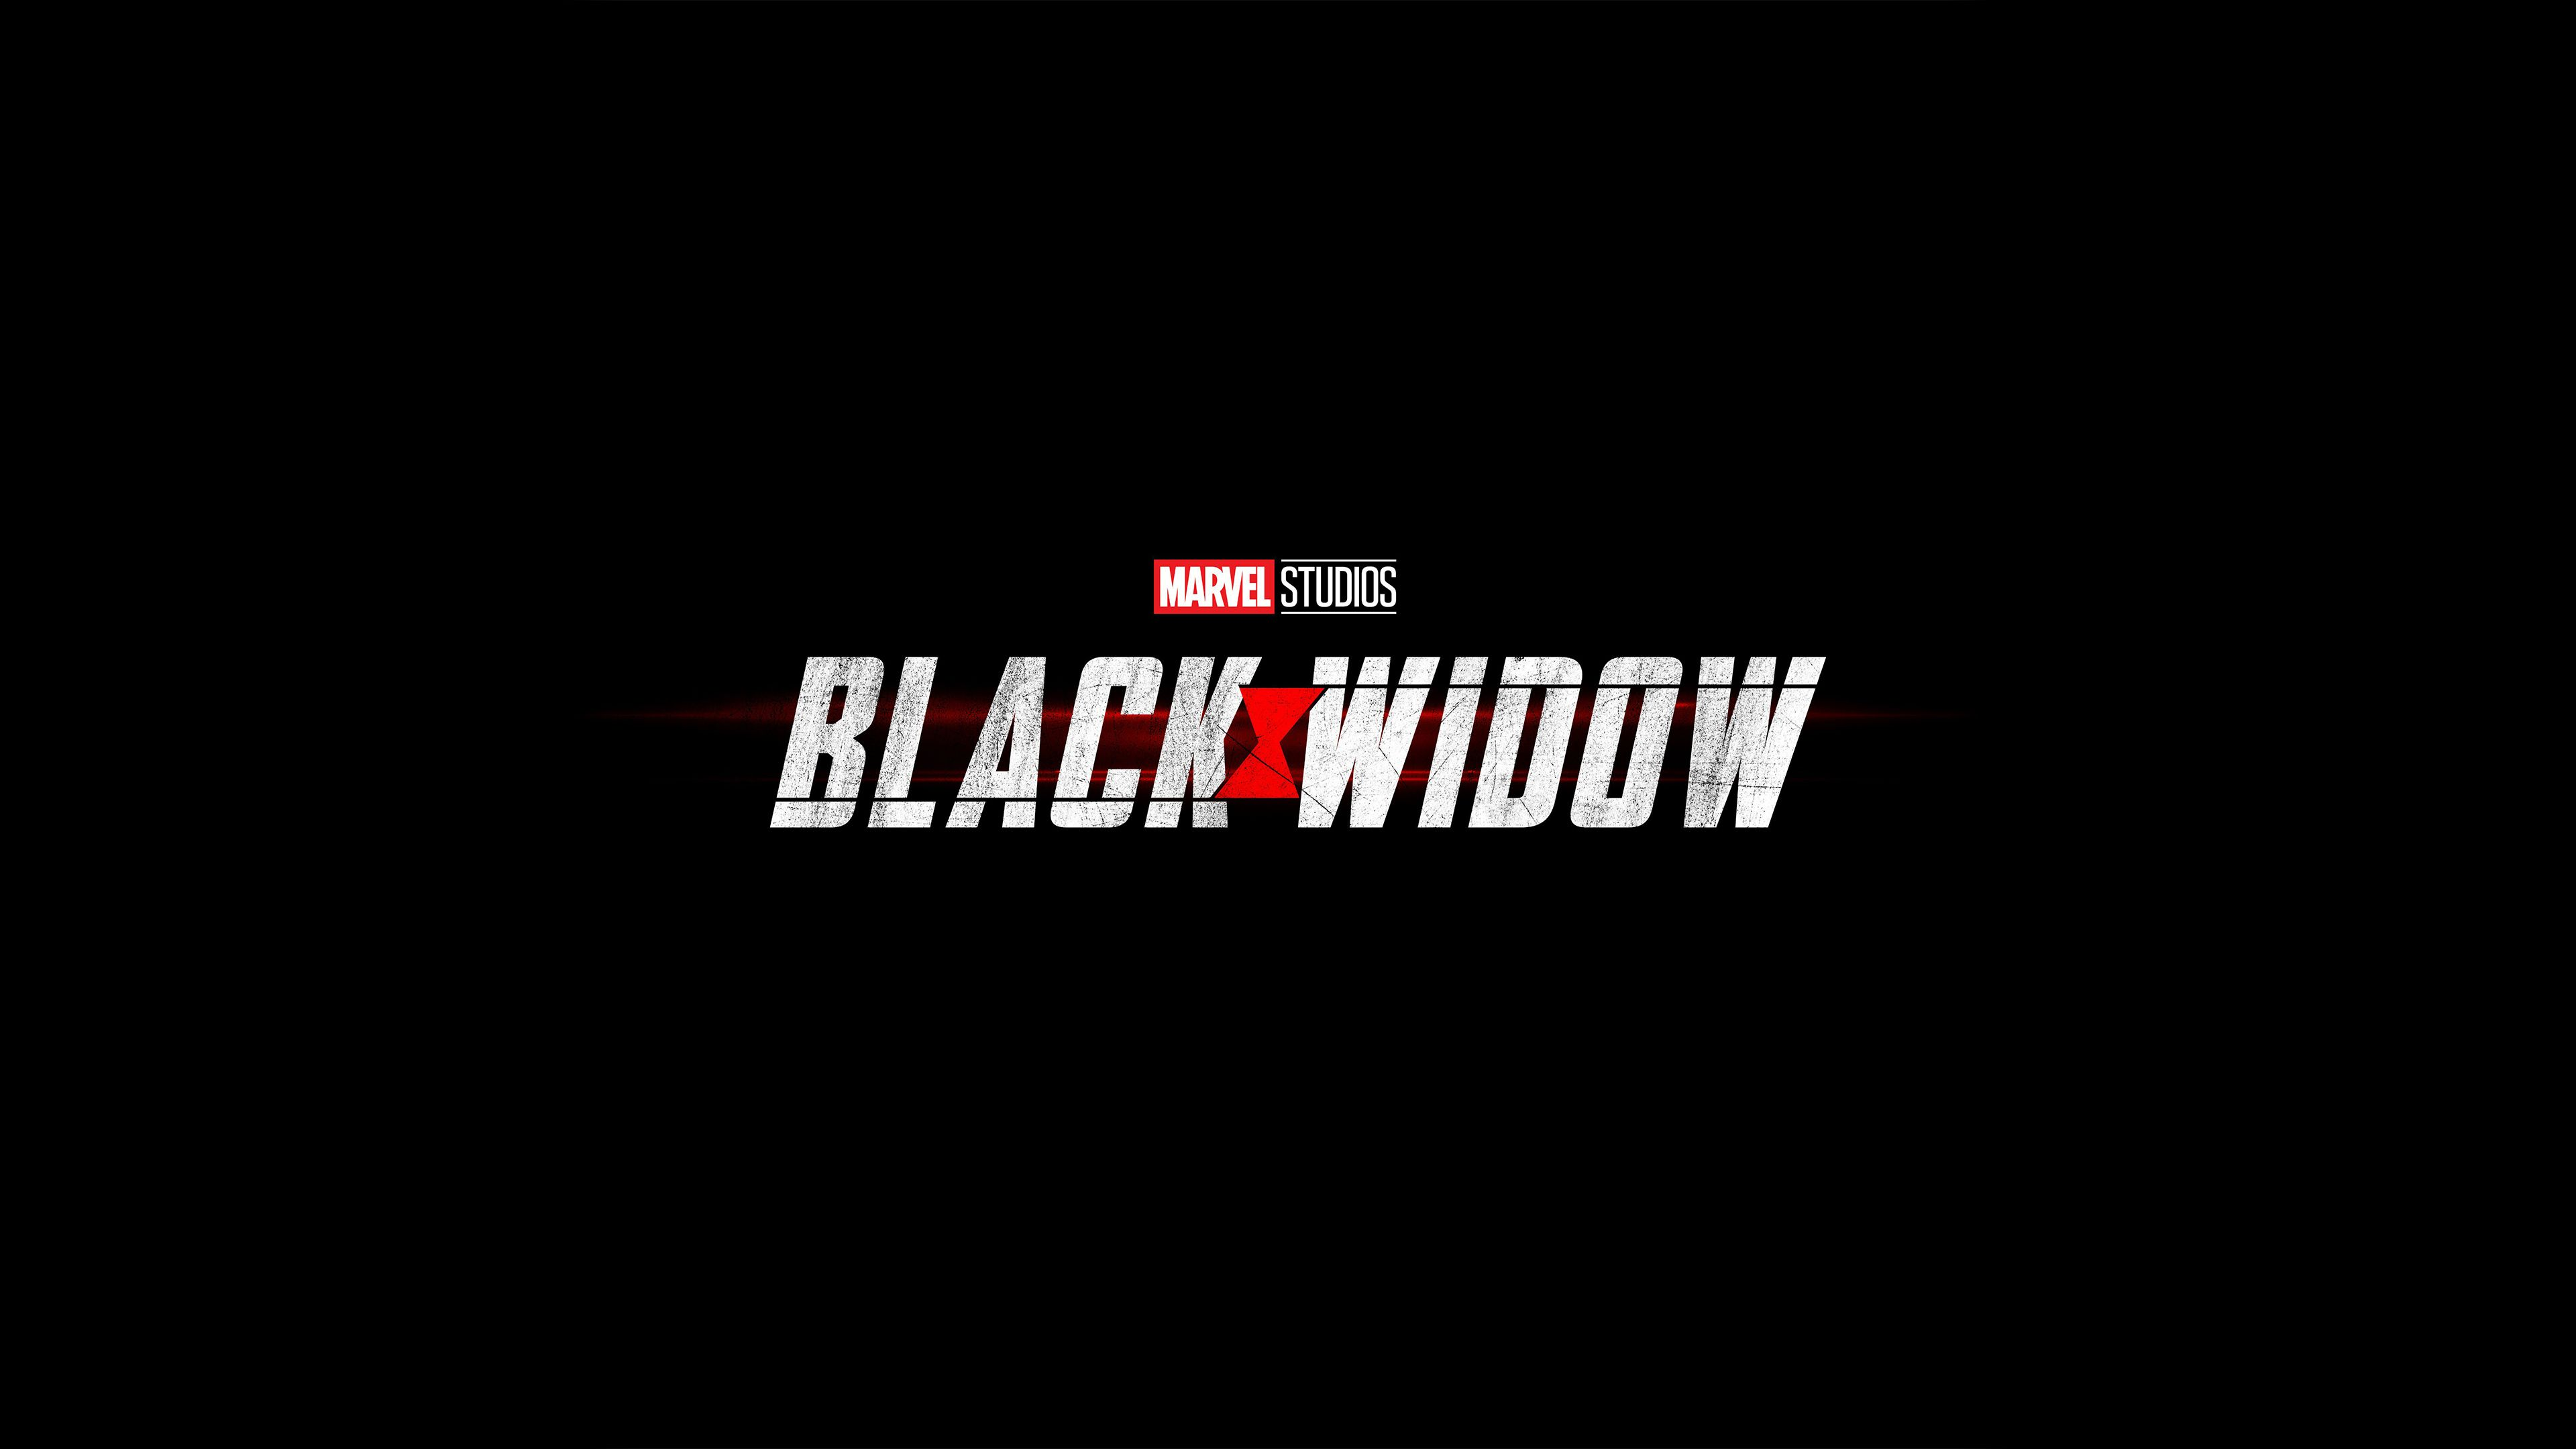 Black Widow 2020 Wallpapers   Top Black Widow 2020 3840x2160